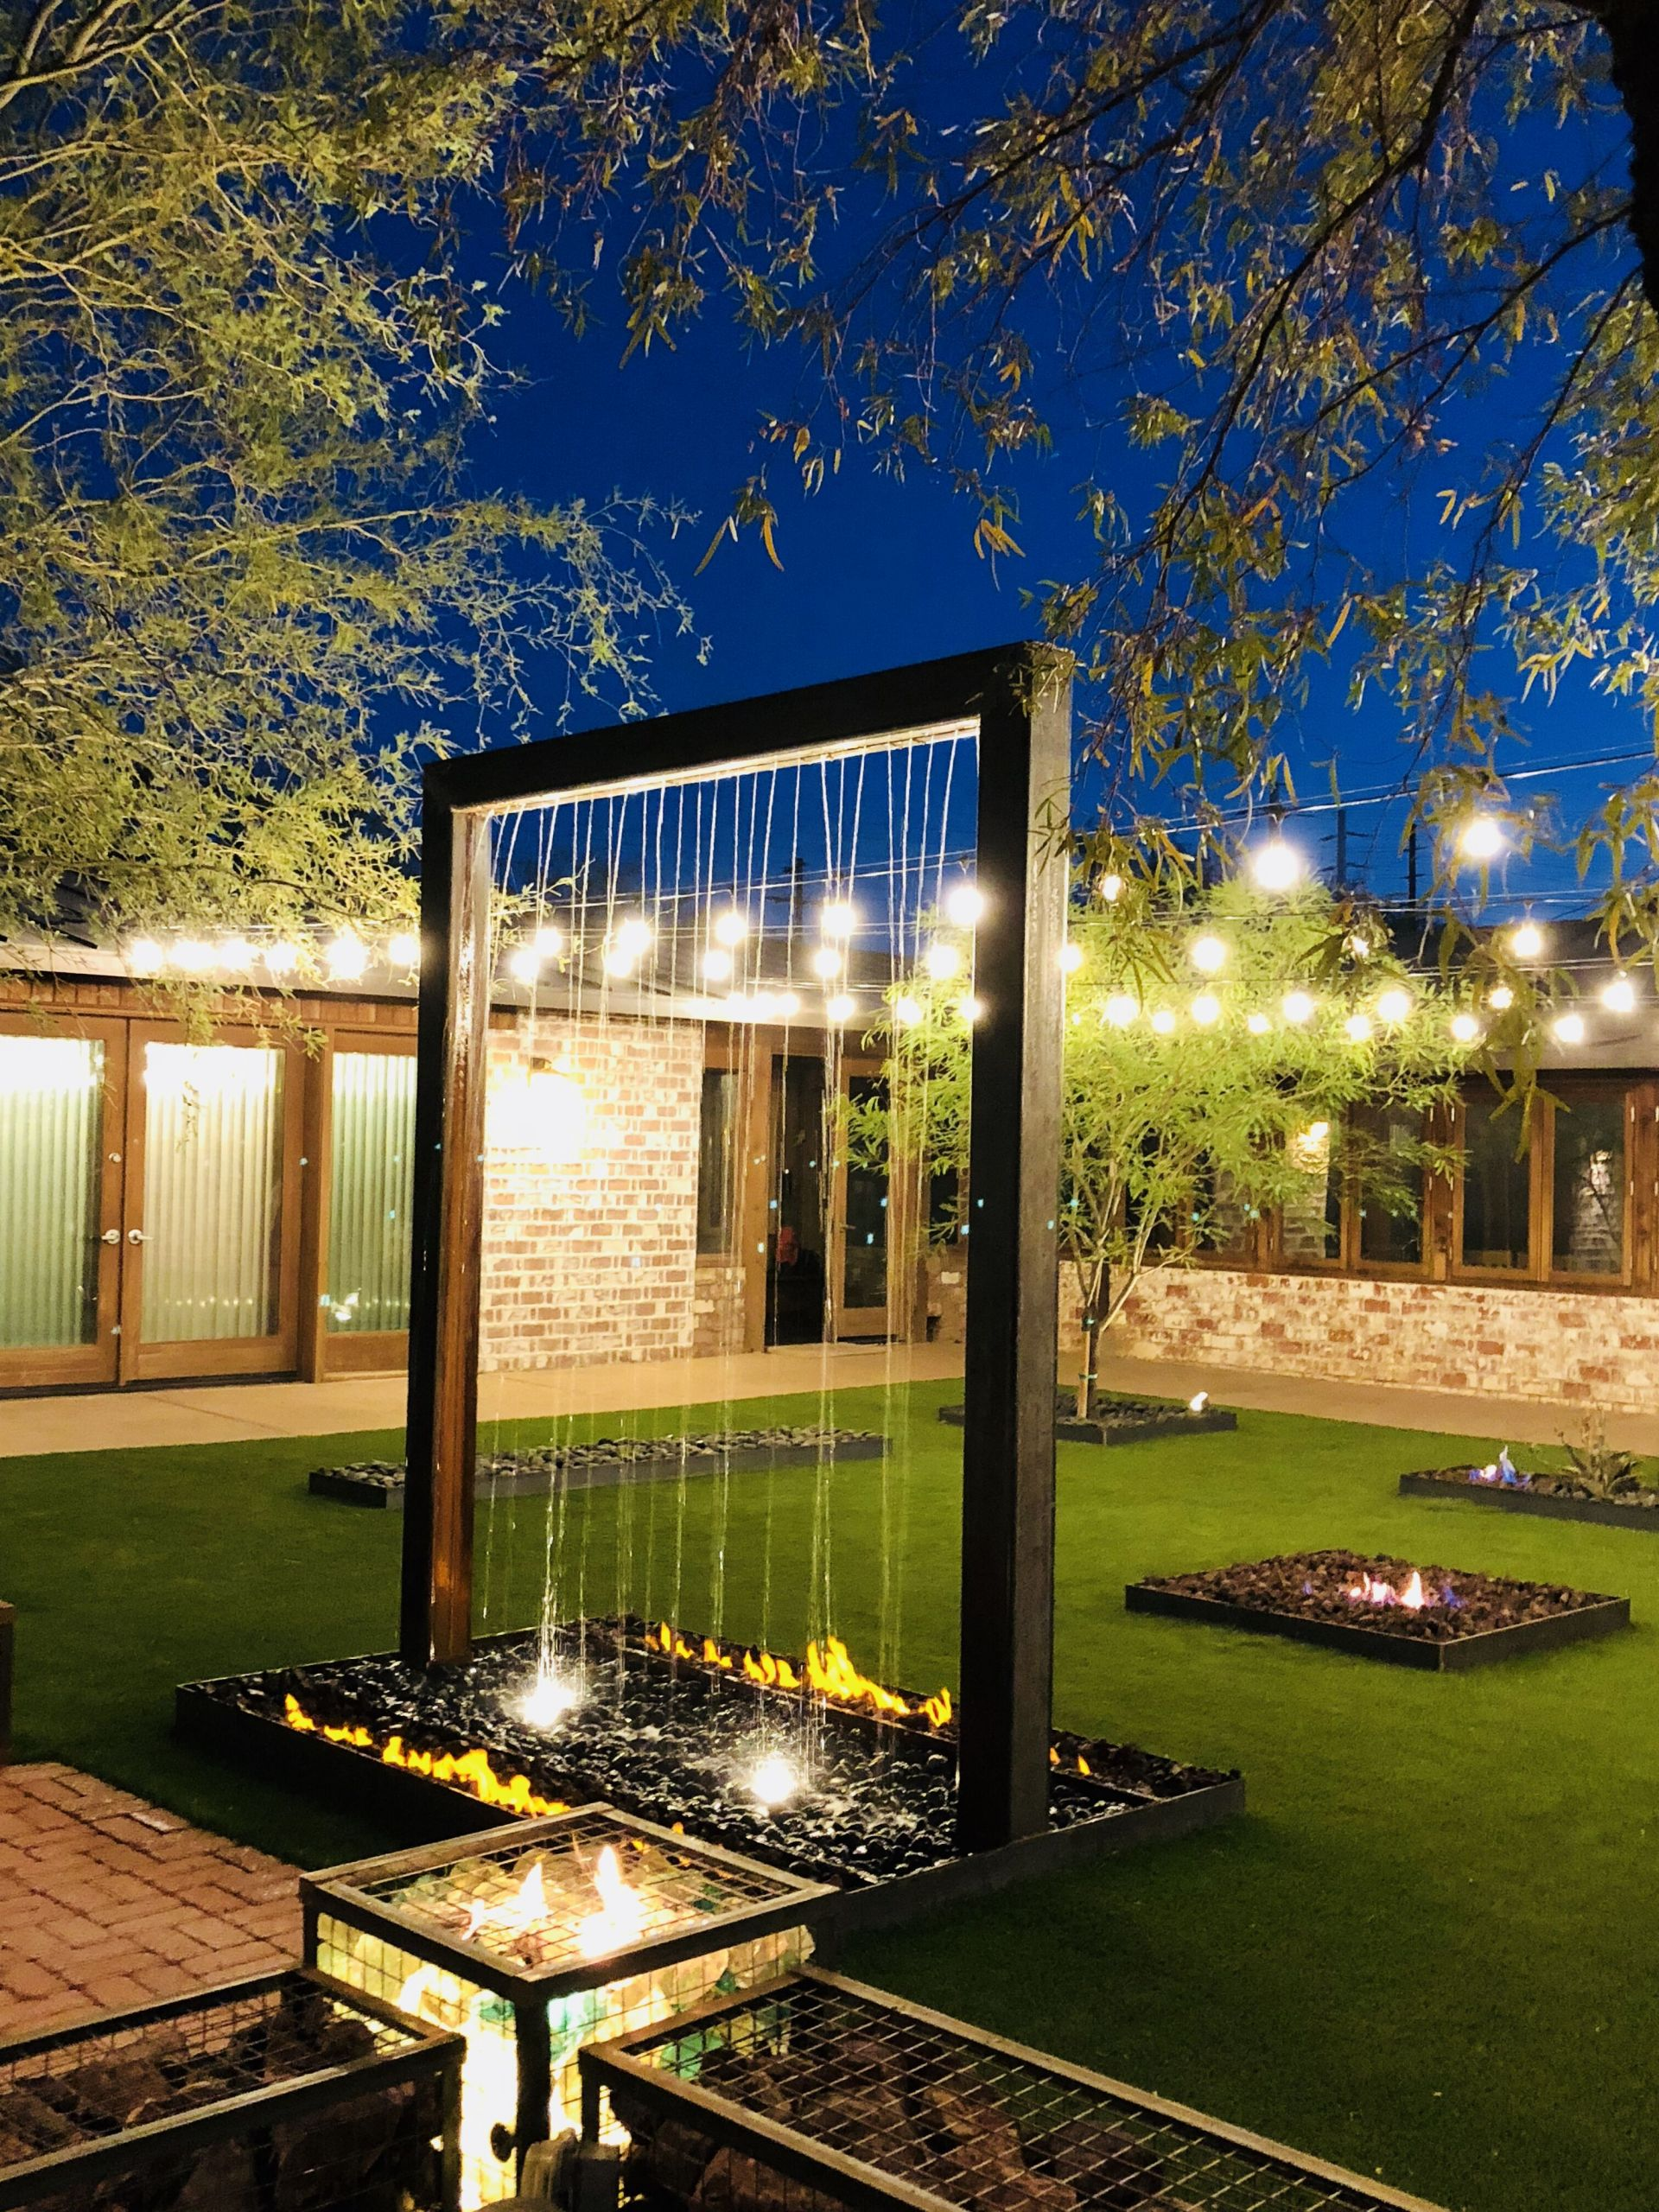 Johnson'S Backyard Garden  Residential Landscaping Services in Phoenix AZ